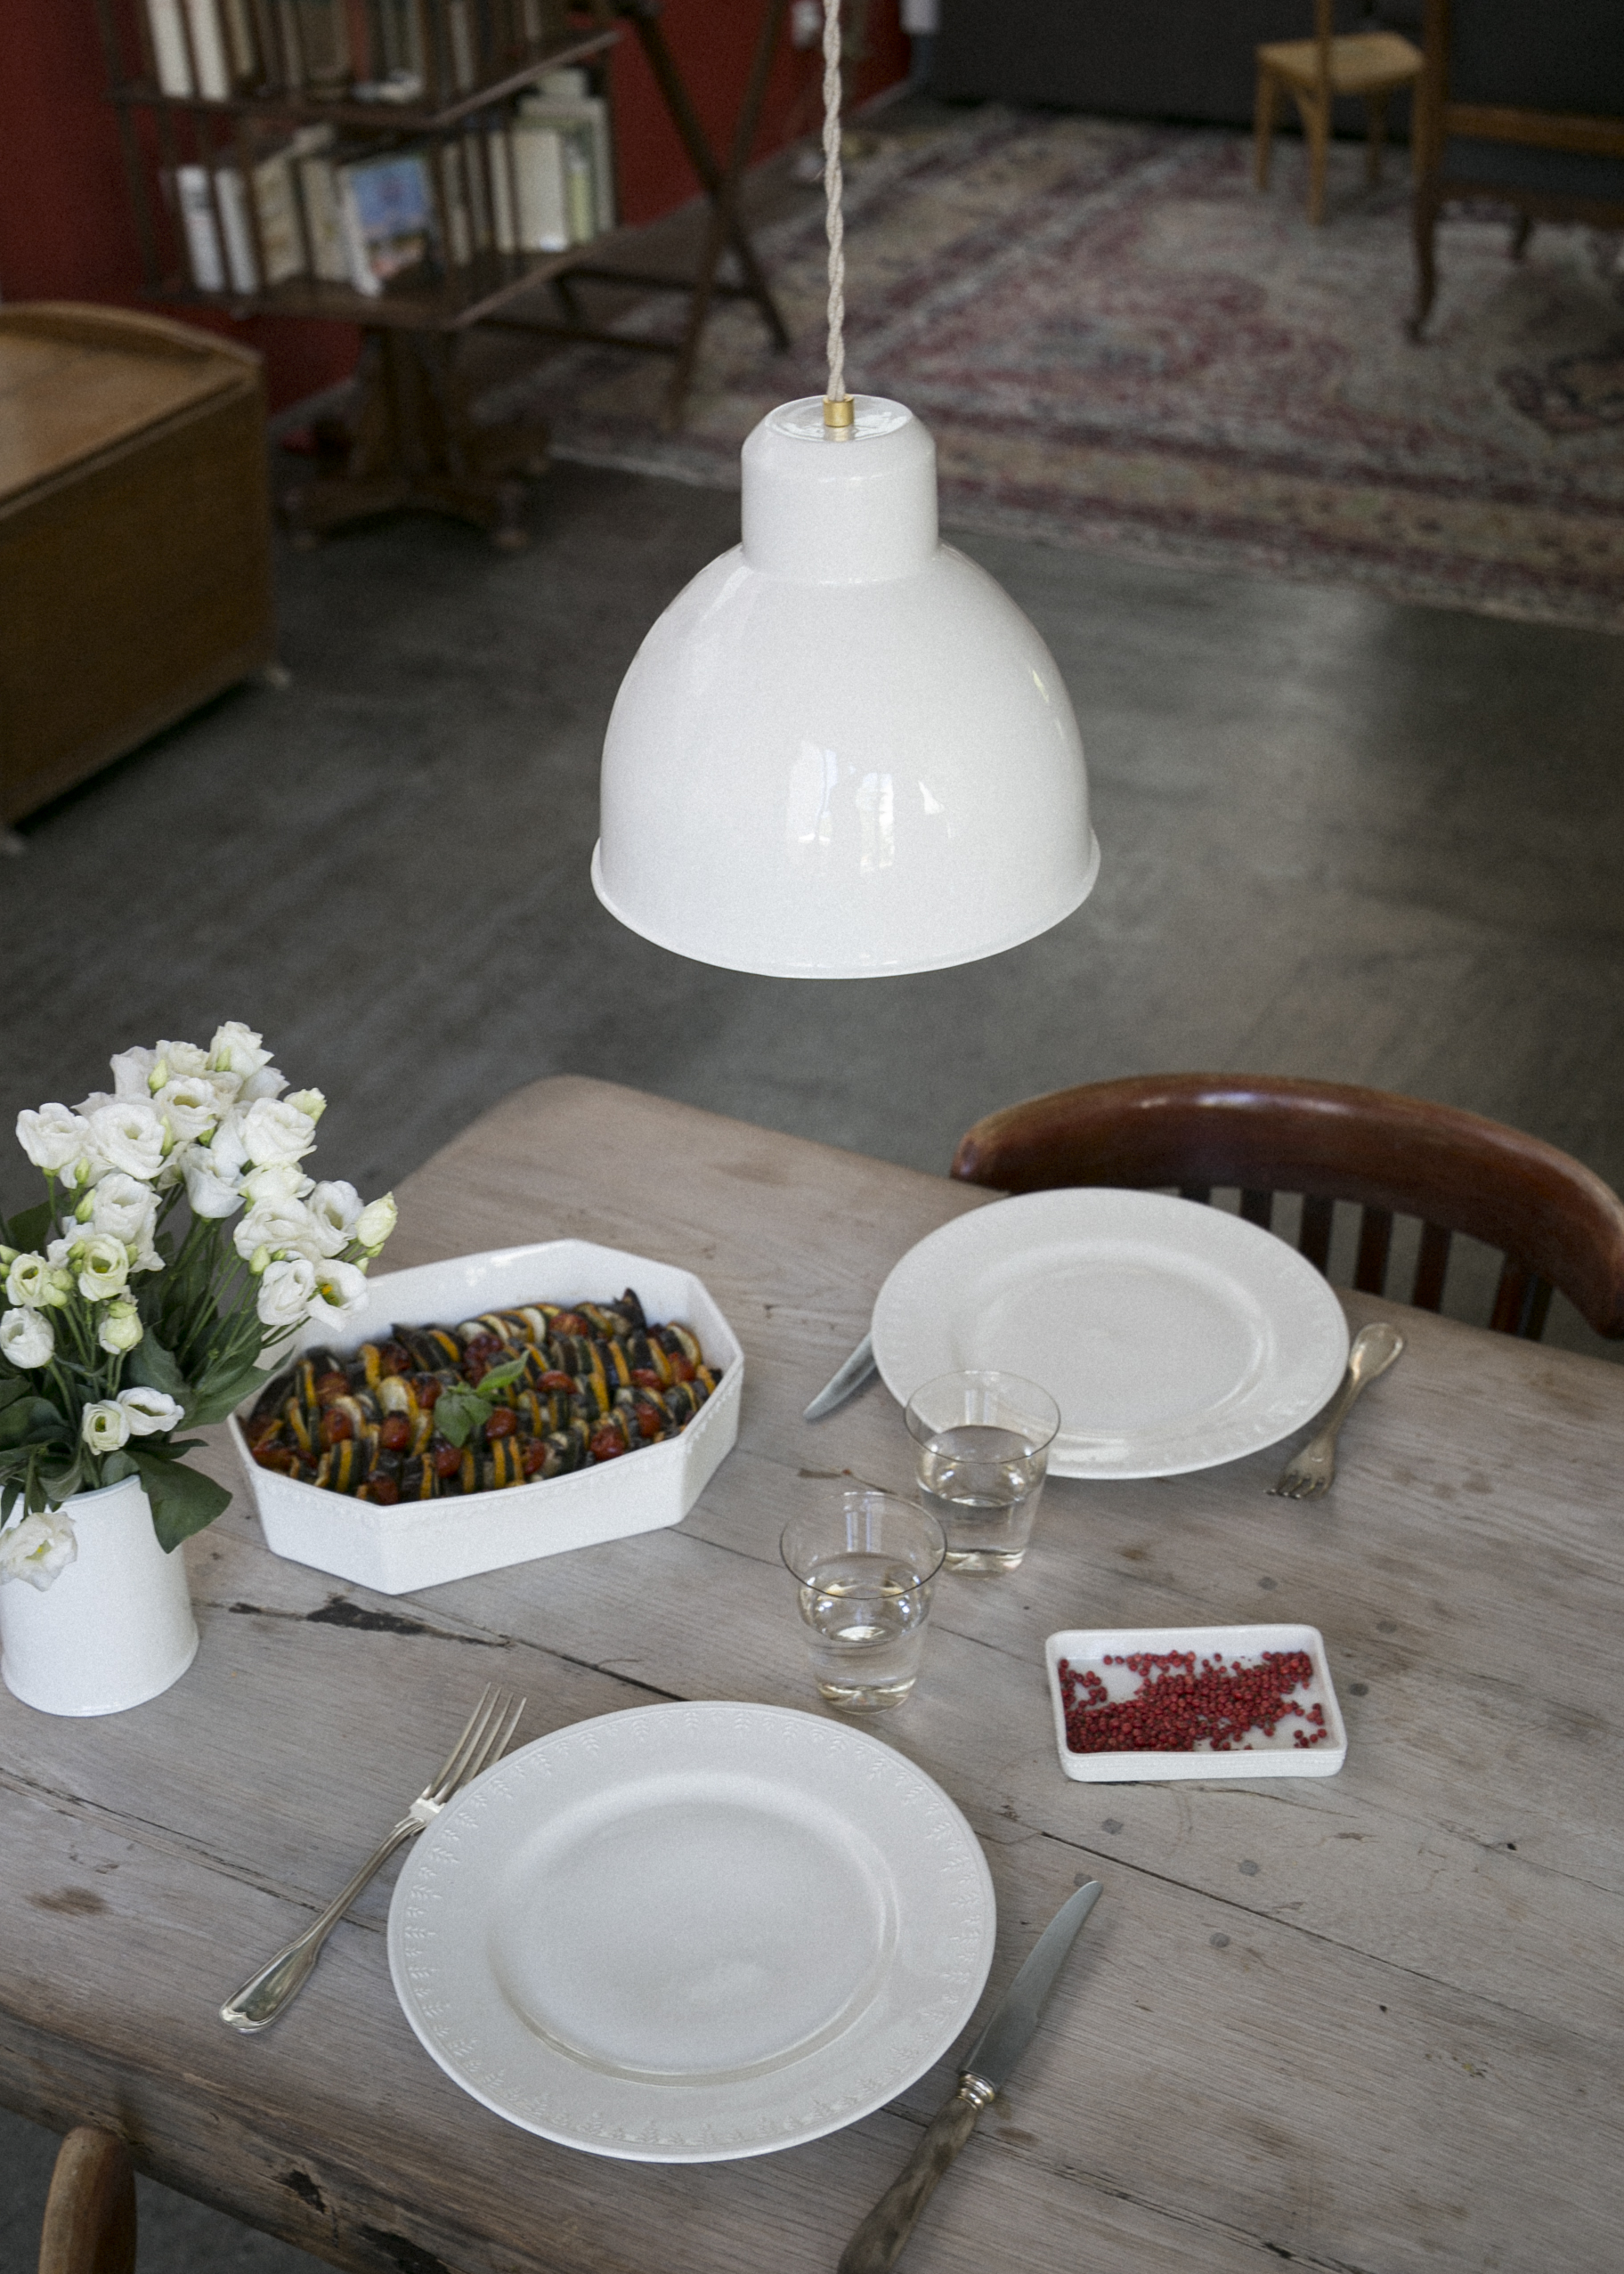 paulette-xl-emaillee-table.jpg